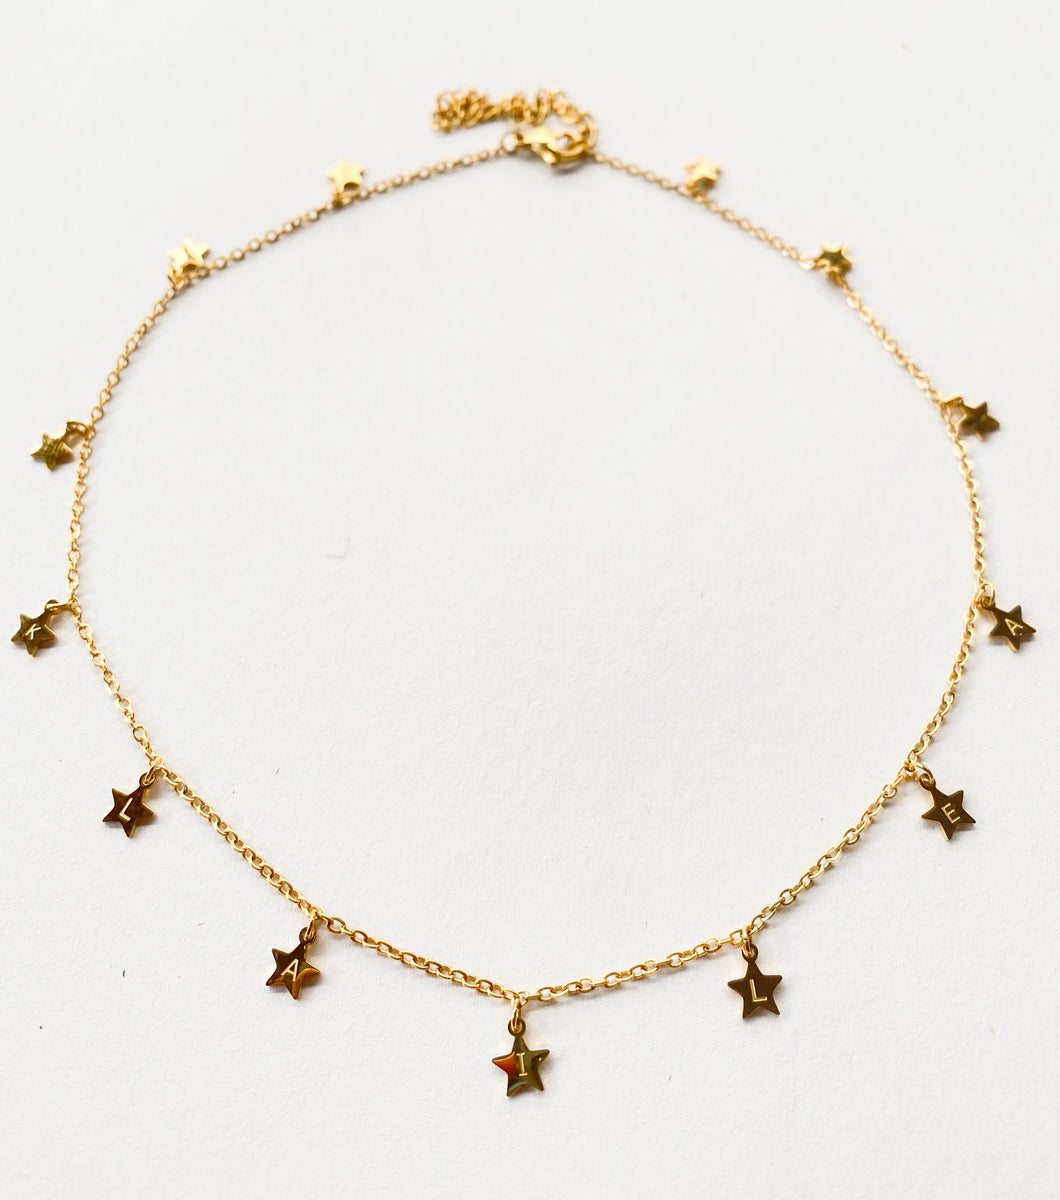 KLAILEA Yellow Gold Star Choker